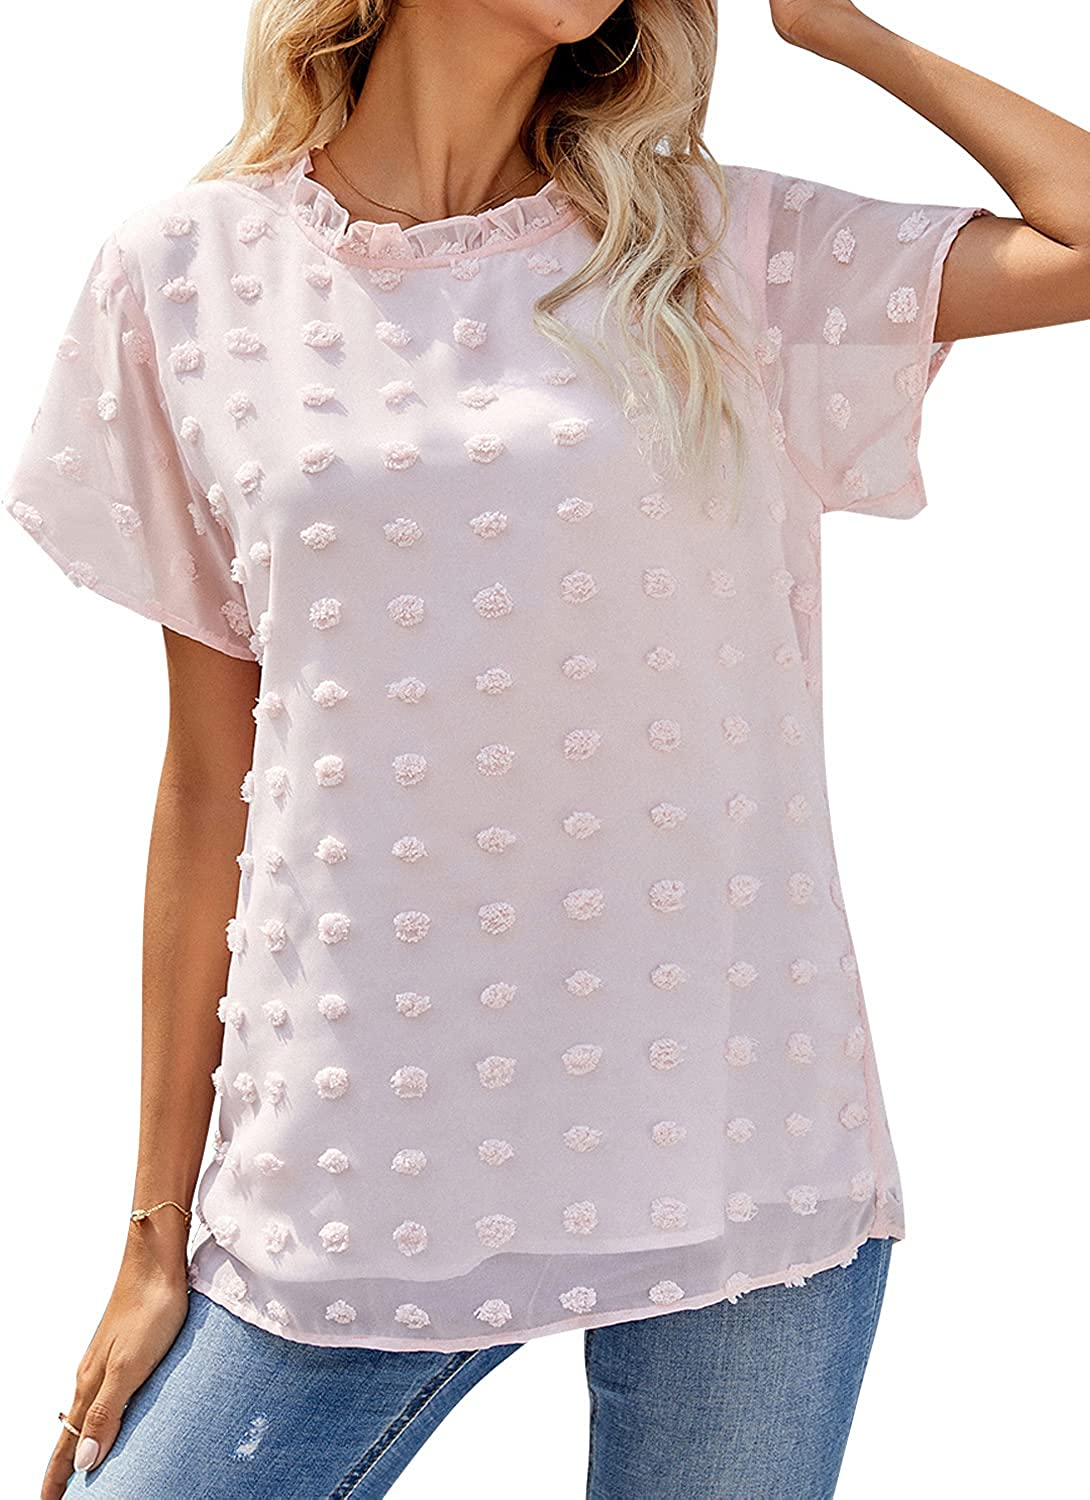 Blooming Jelly Women's Chiffon Blouses V Neck Peplum Tops Loose Pleated Button Down Shirts